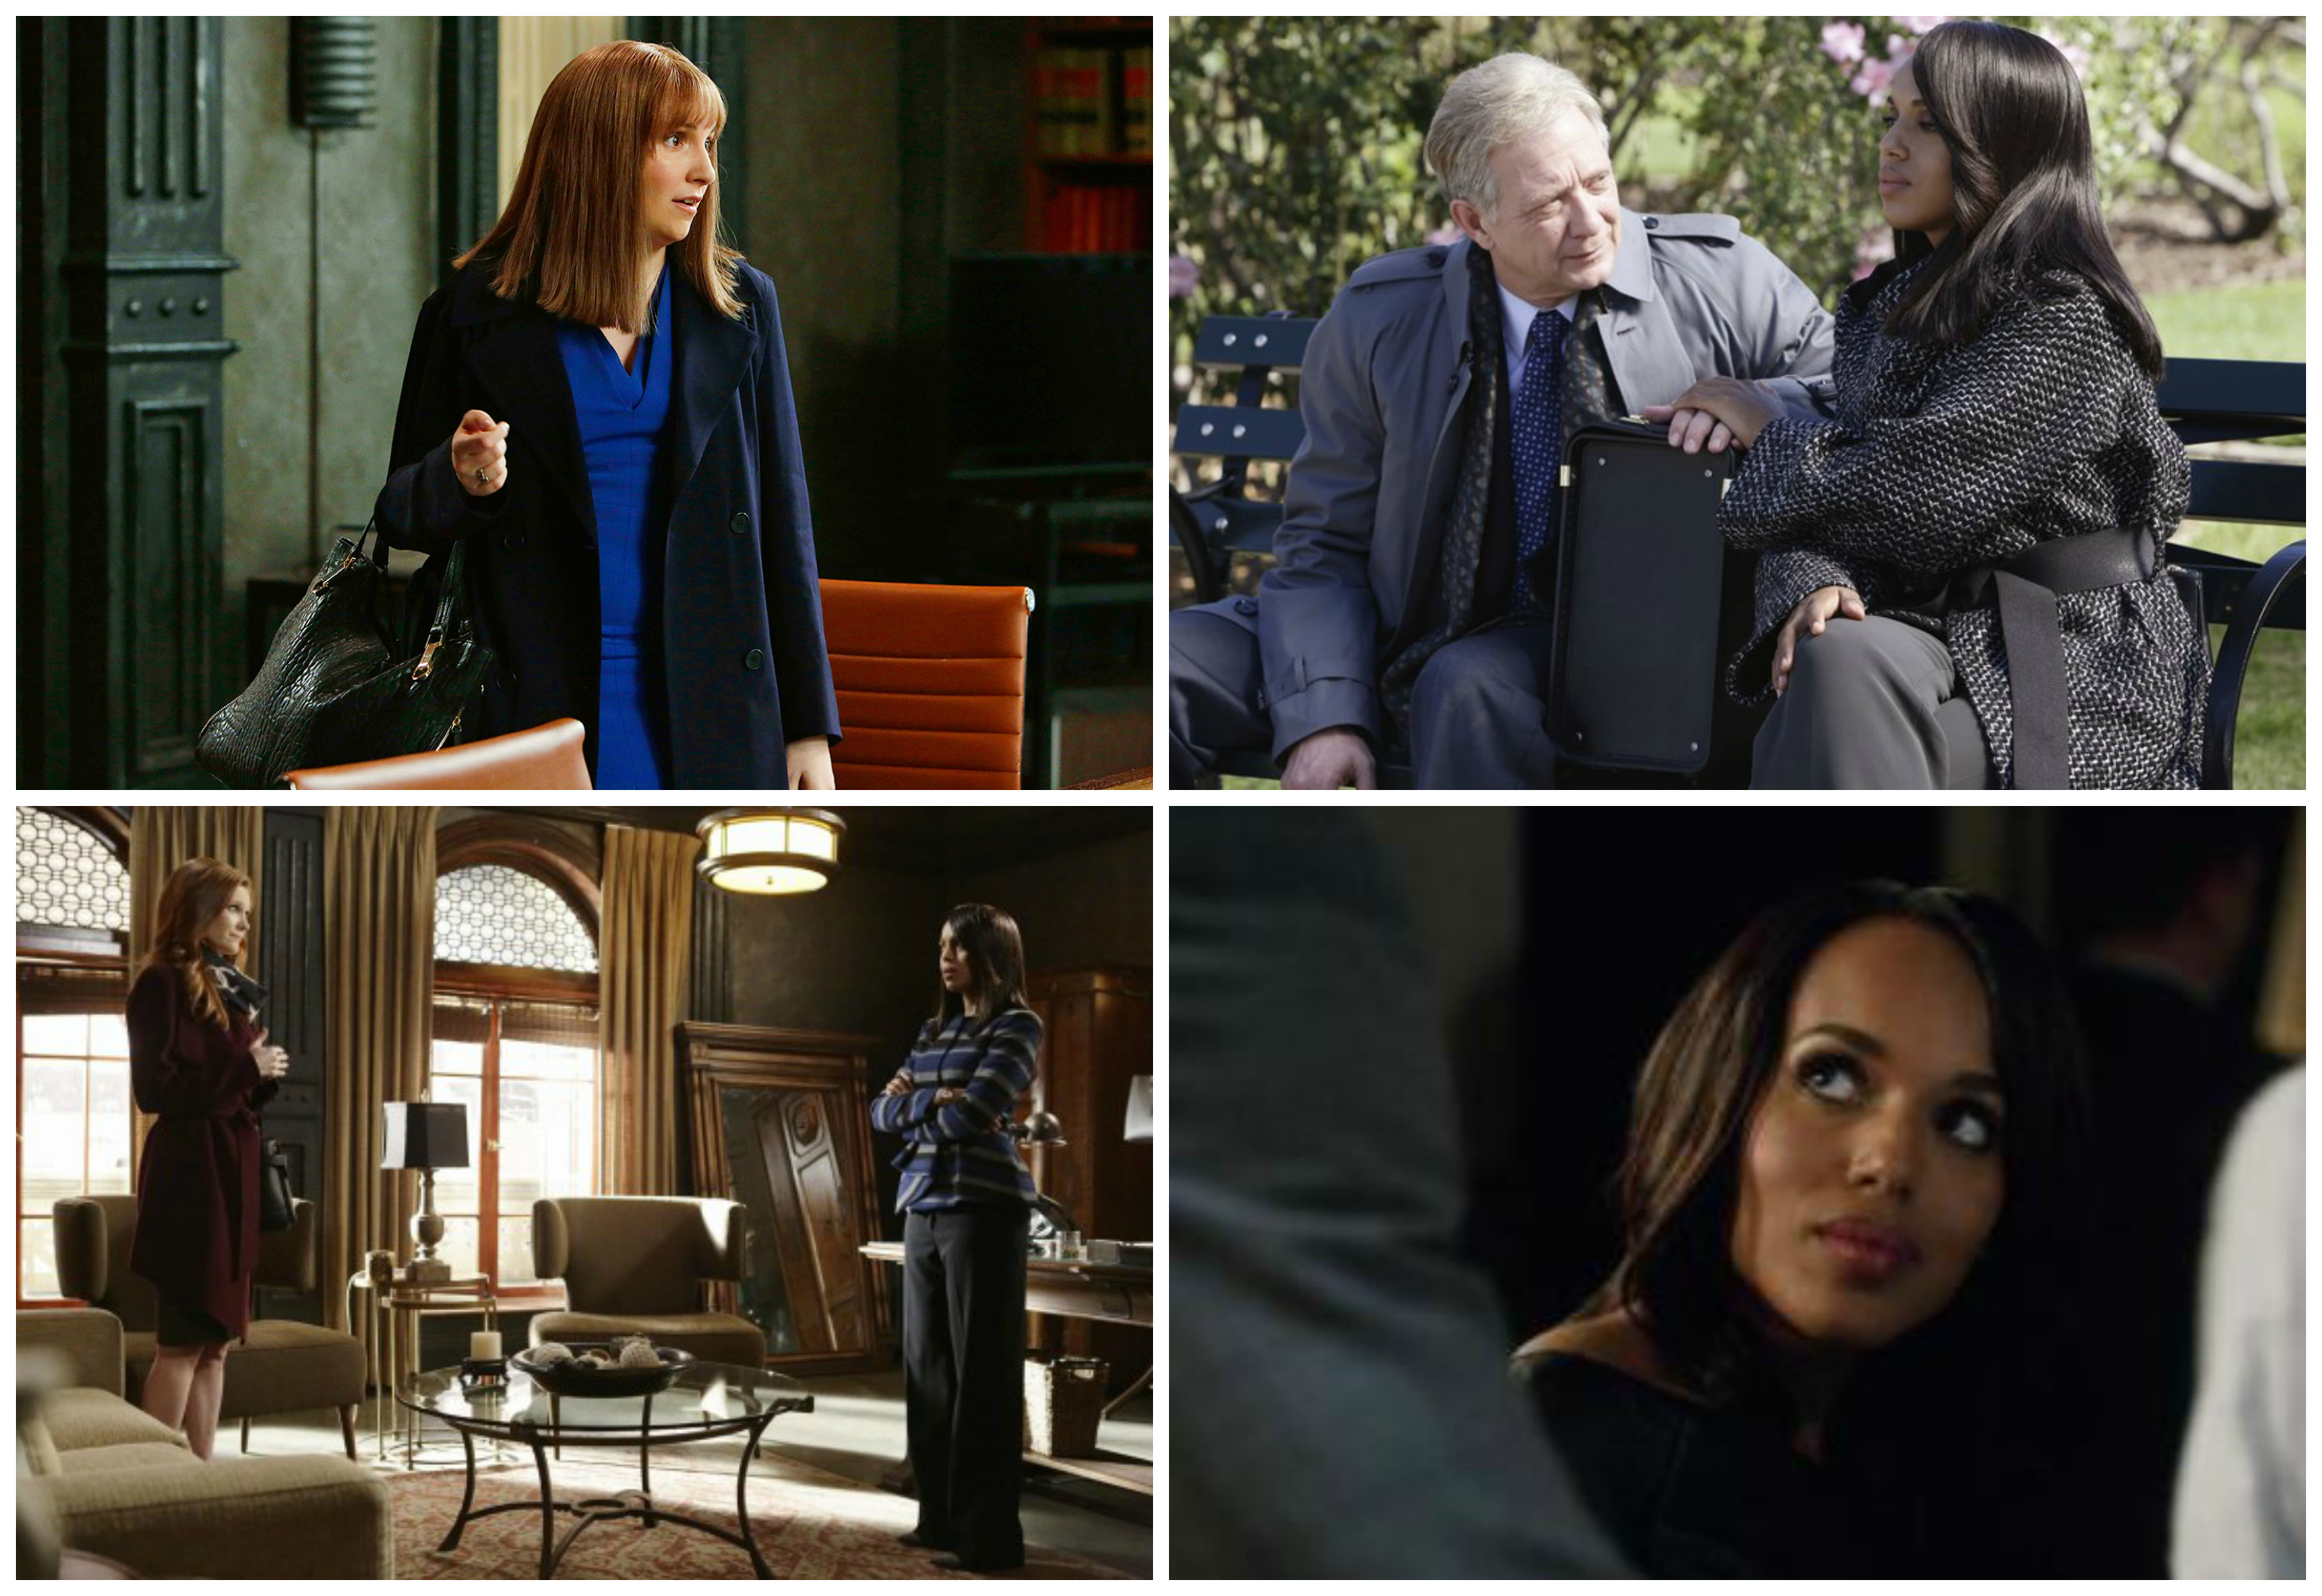 Episode 199: Scandal - S4E16 - It's Good to Be Kink